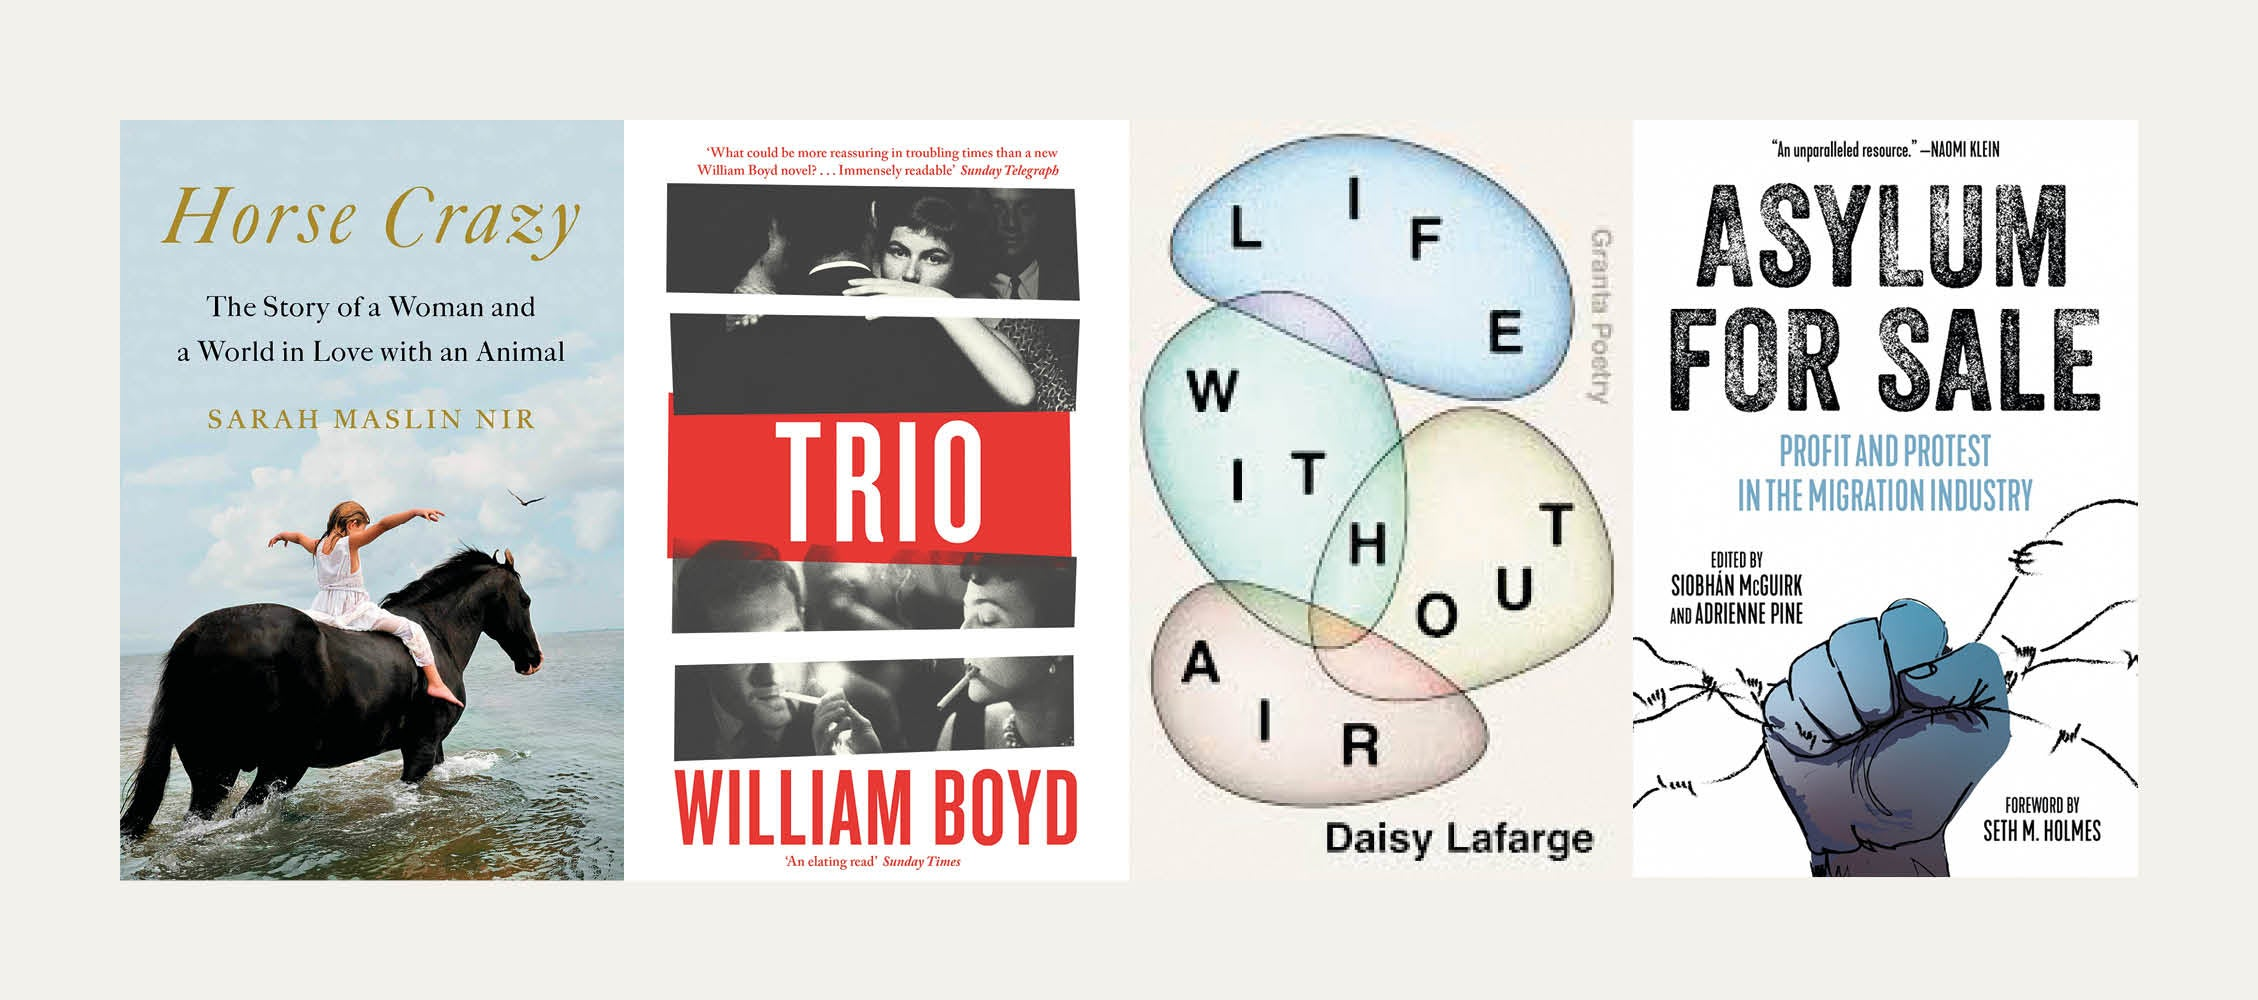 NS Recommends: New books from William Boyd, Sarah Maslin Nir, Daisy Lafarge, Siobhán McGuirk and Adrienne Pine